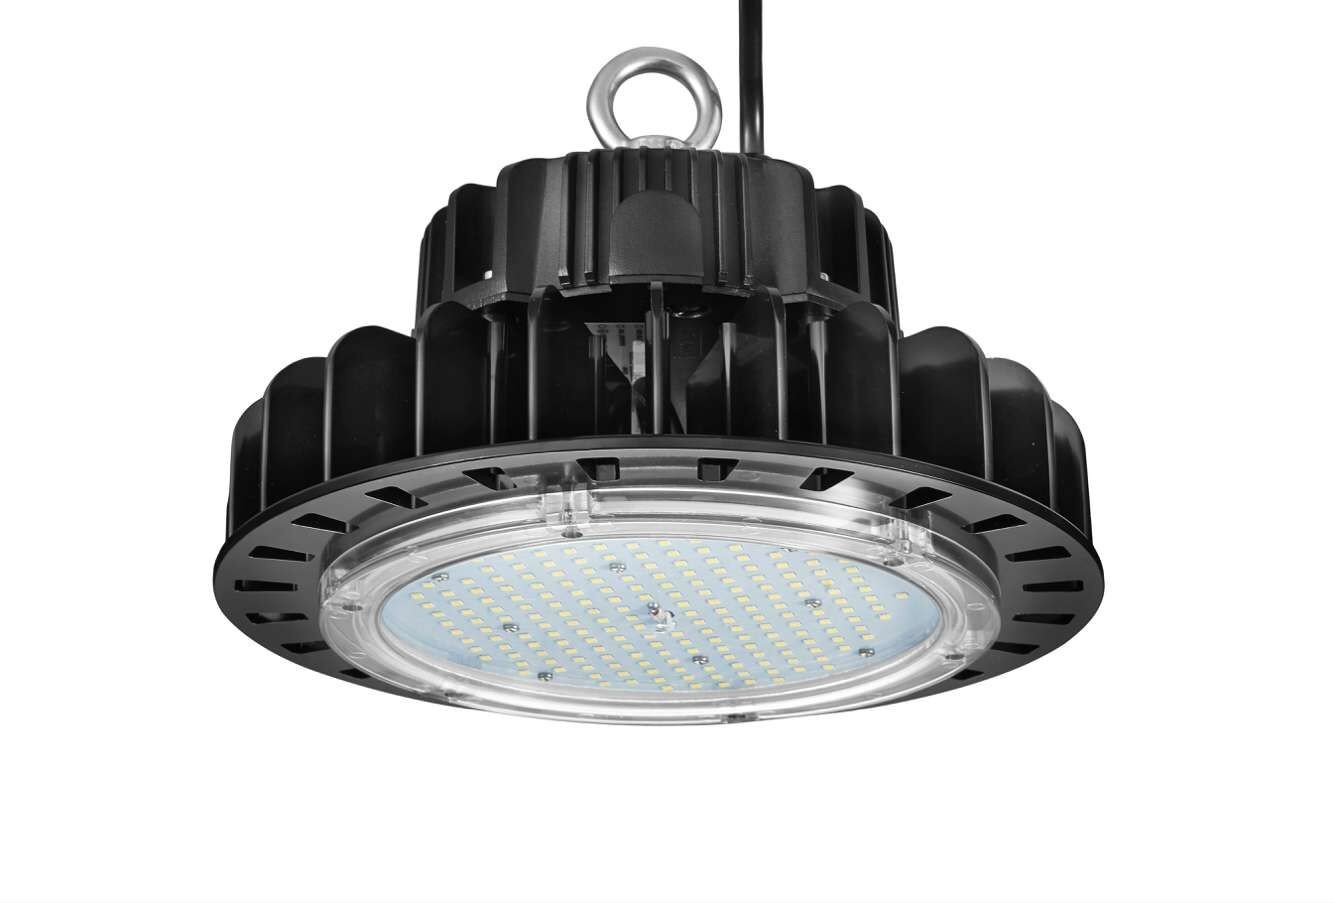 STAR Cold Forging 150W IP65 UFO LED High Bay Light 150LM/W 5 Years Warranty